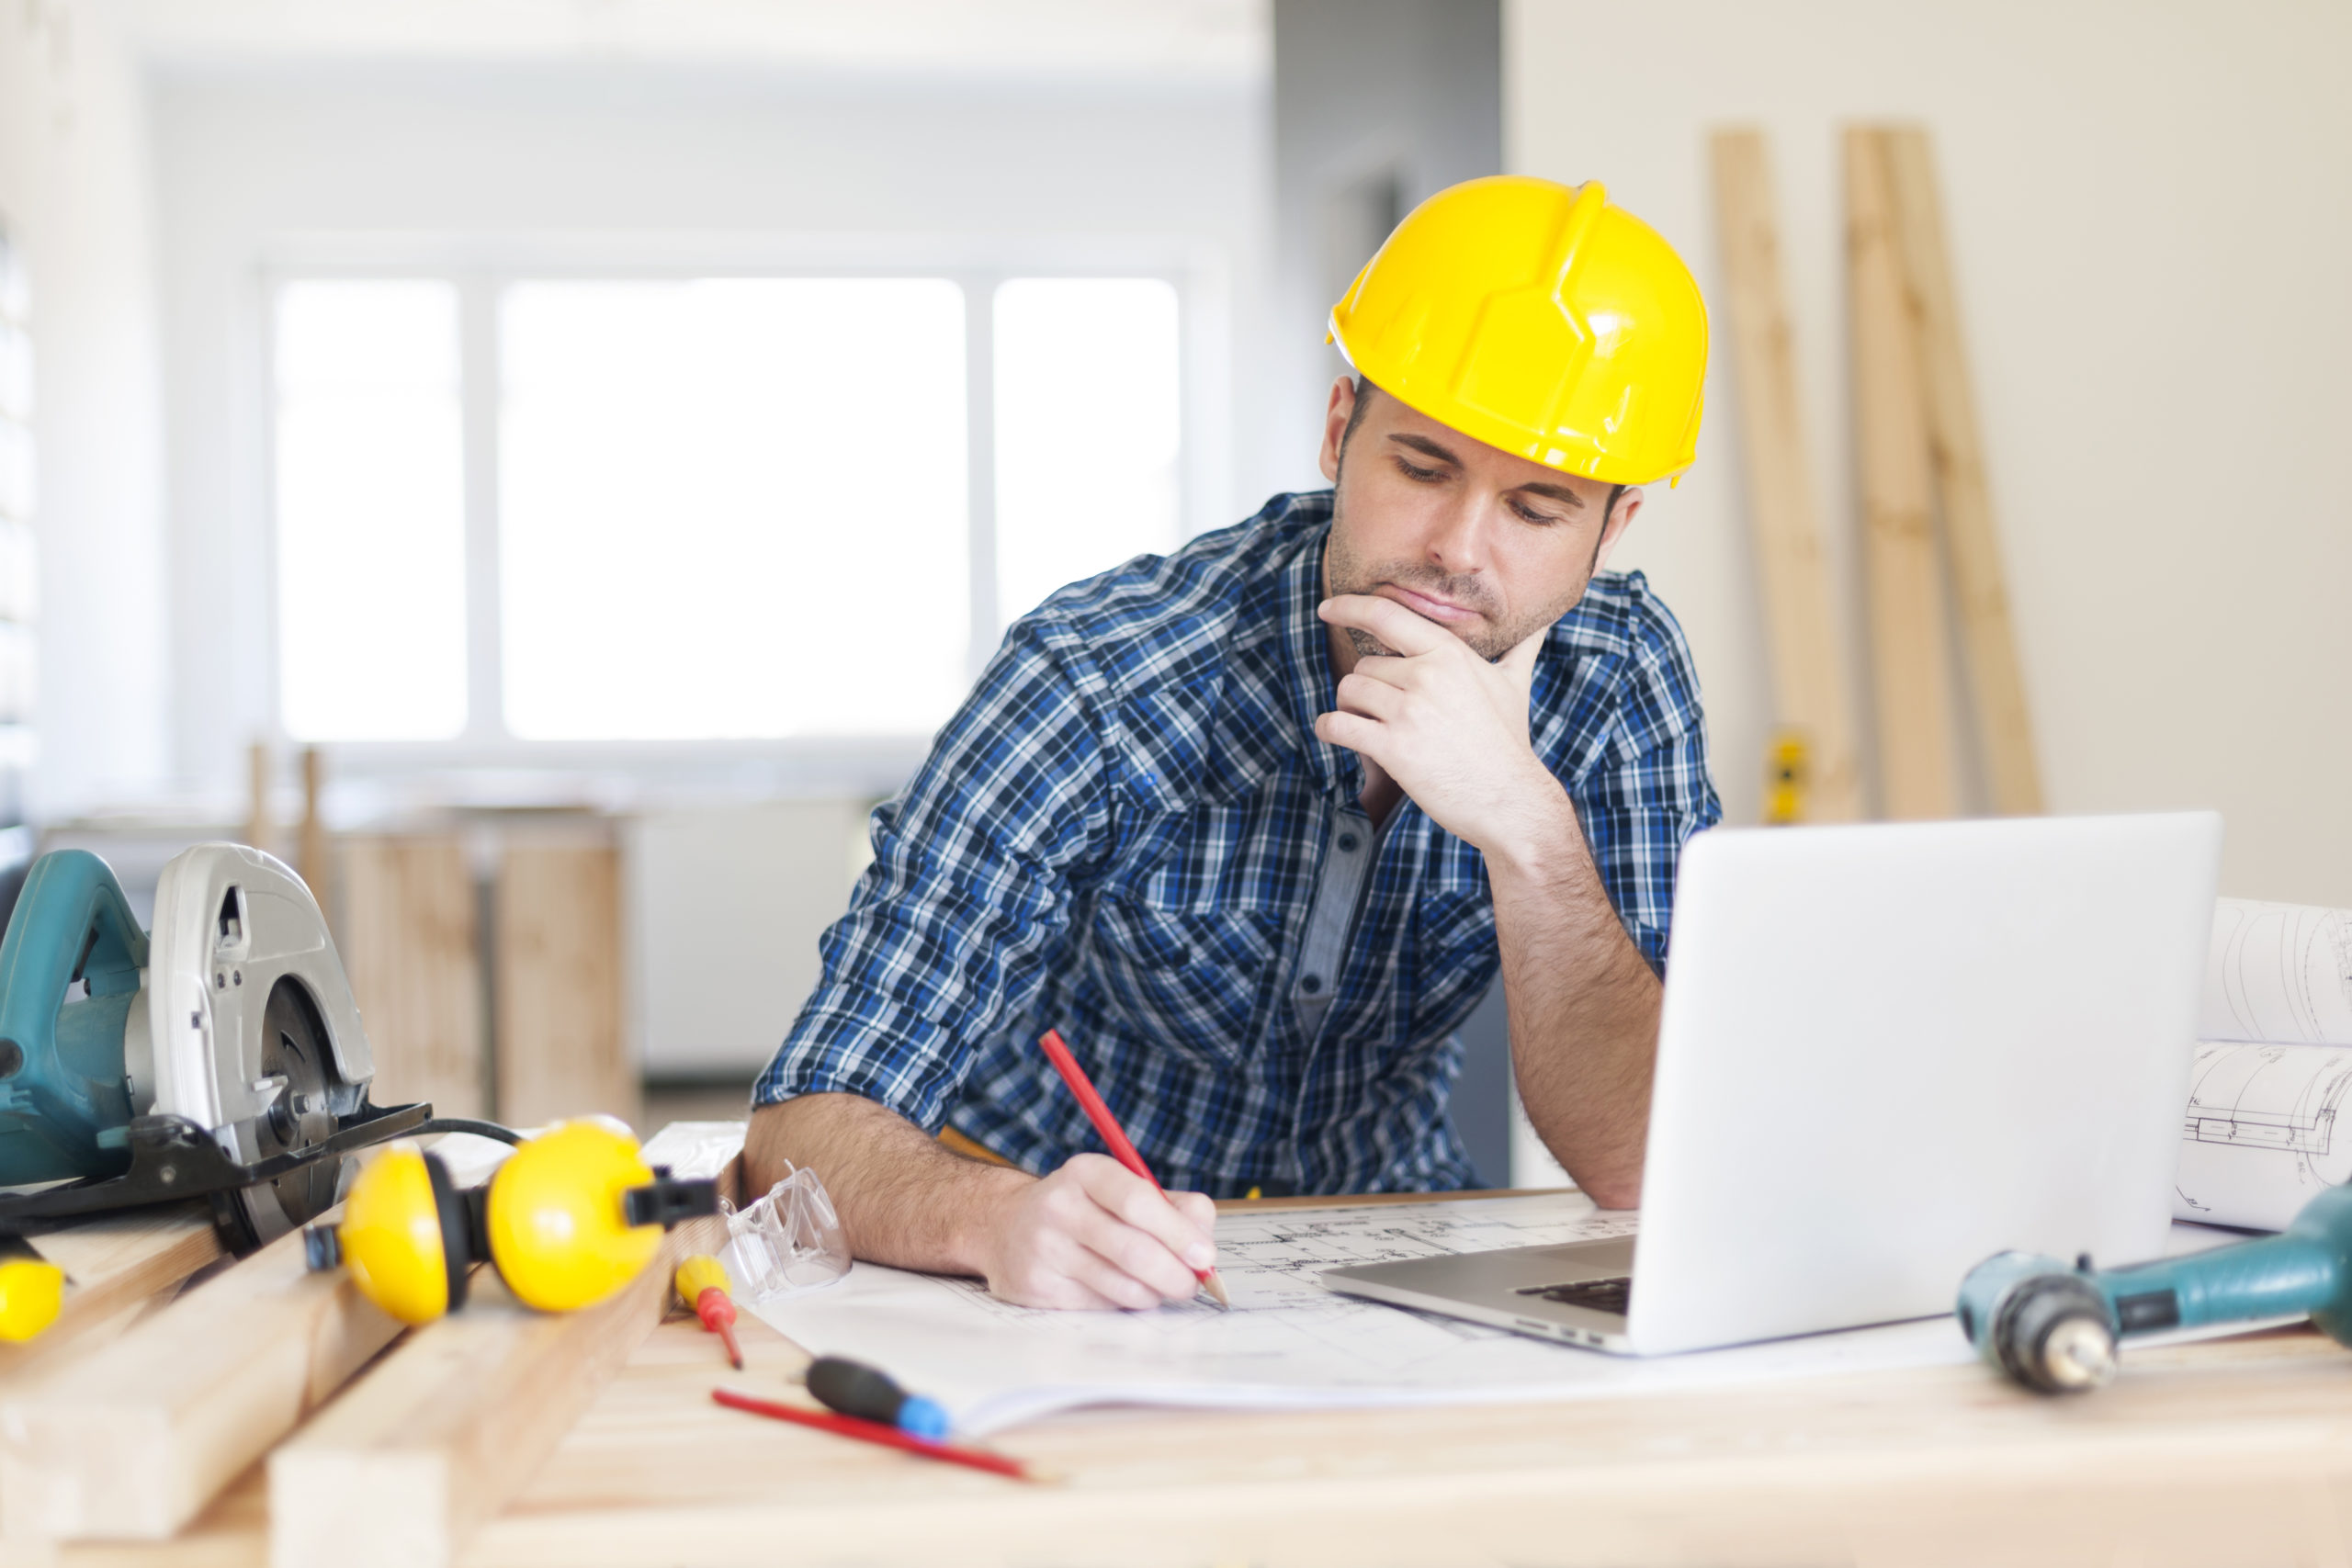 Construction Worker At Desk With Computer